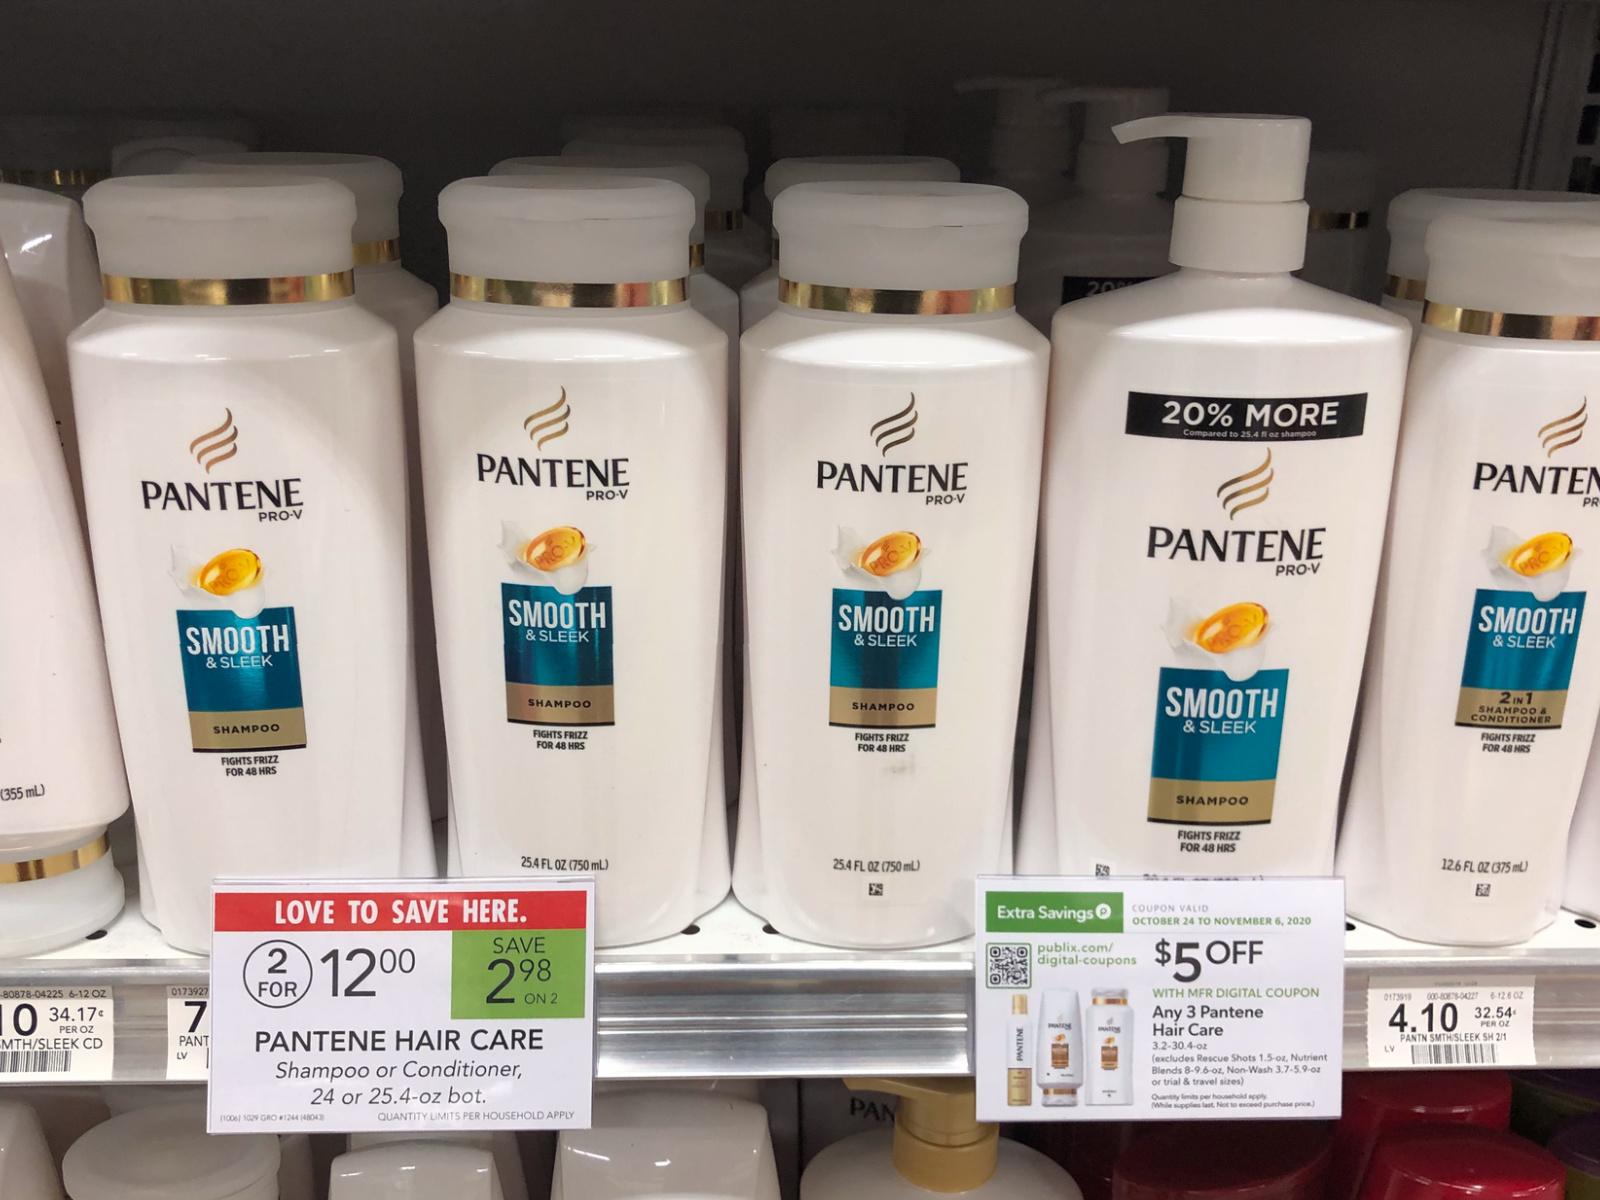 Buy $15 Worth of Participating P&G Products And Get A $5 Publix Gift Card Instantly! on I Heart Publix